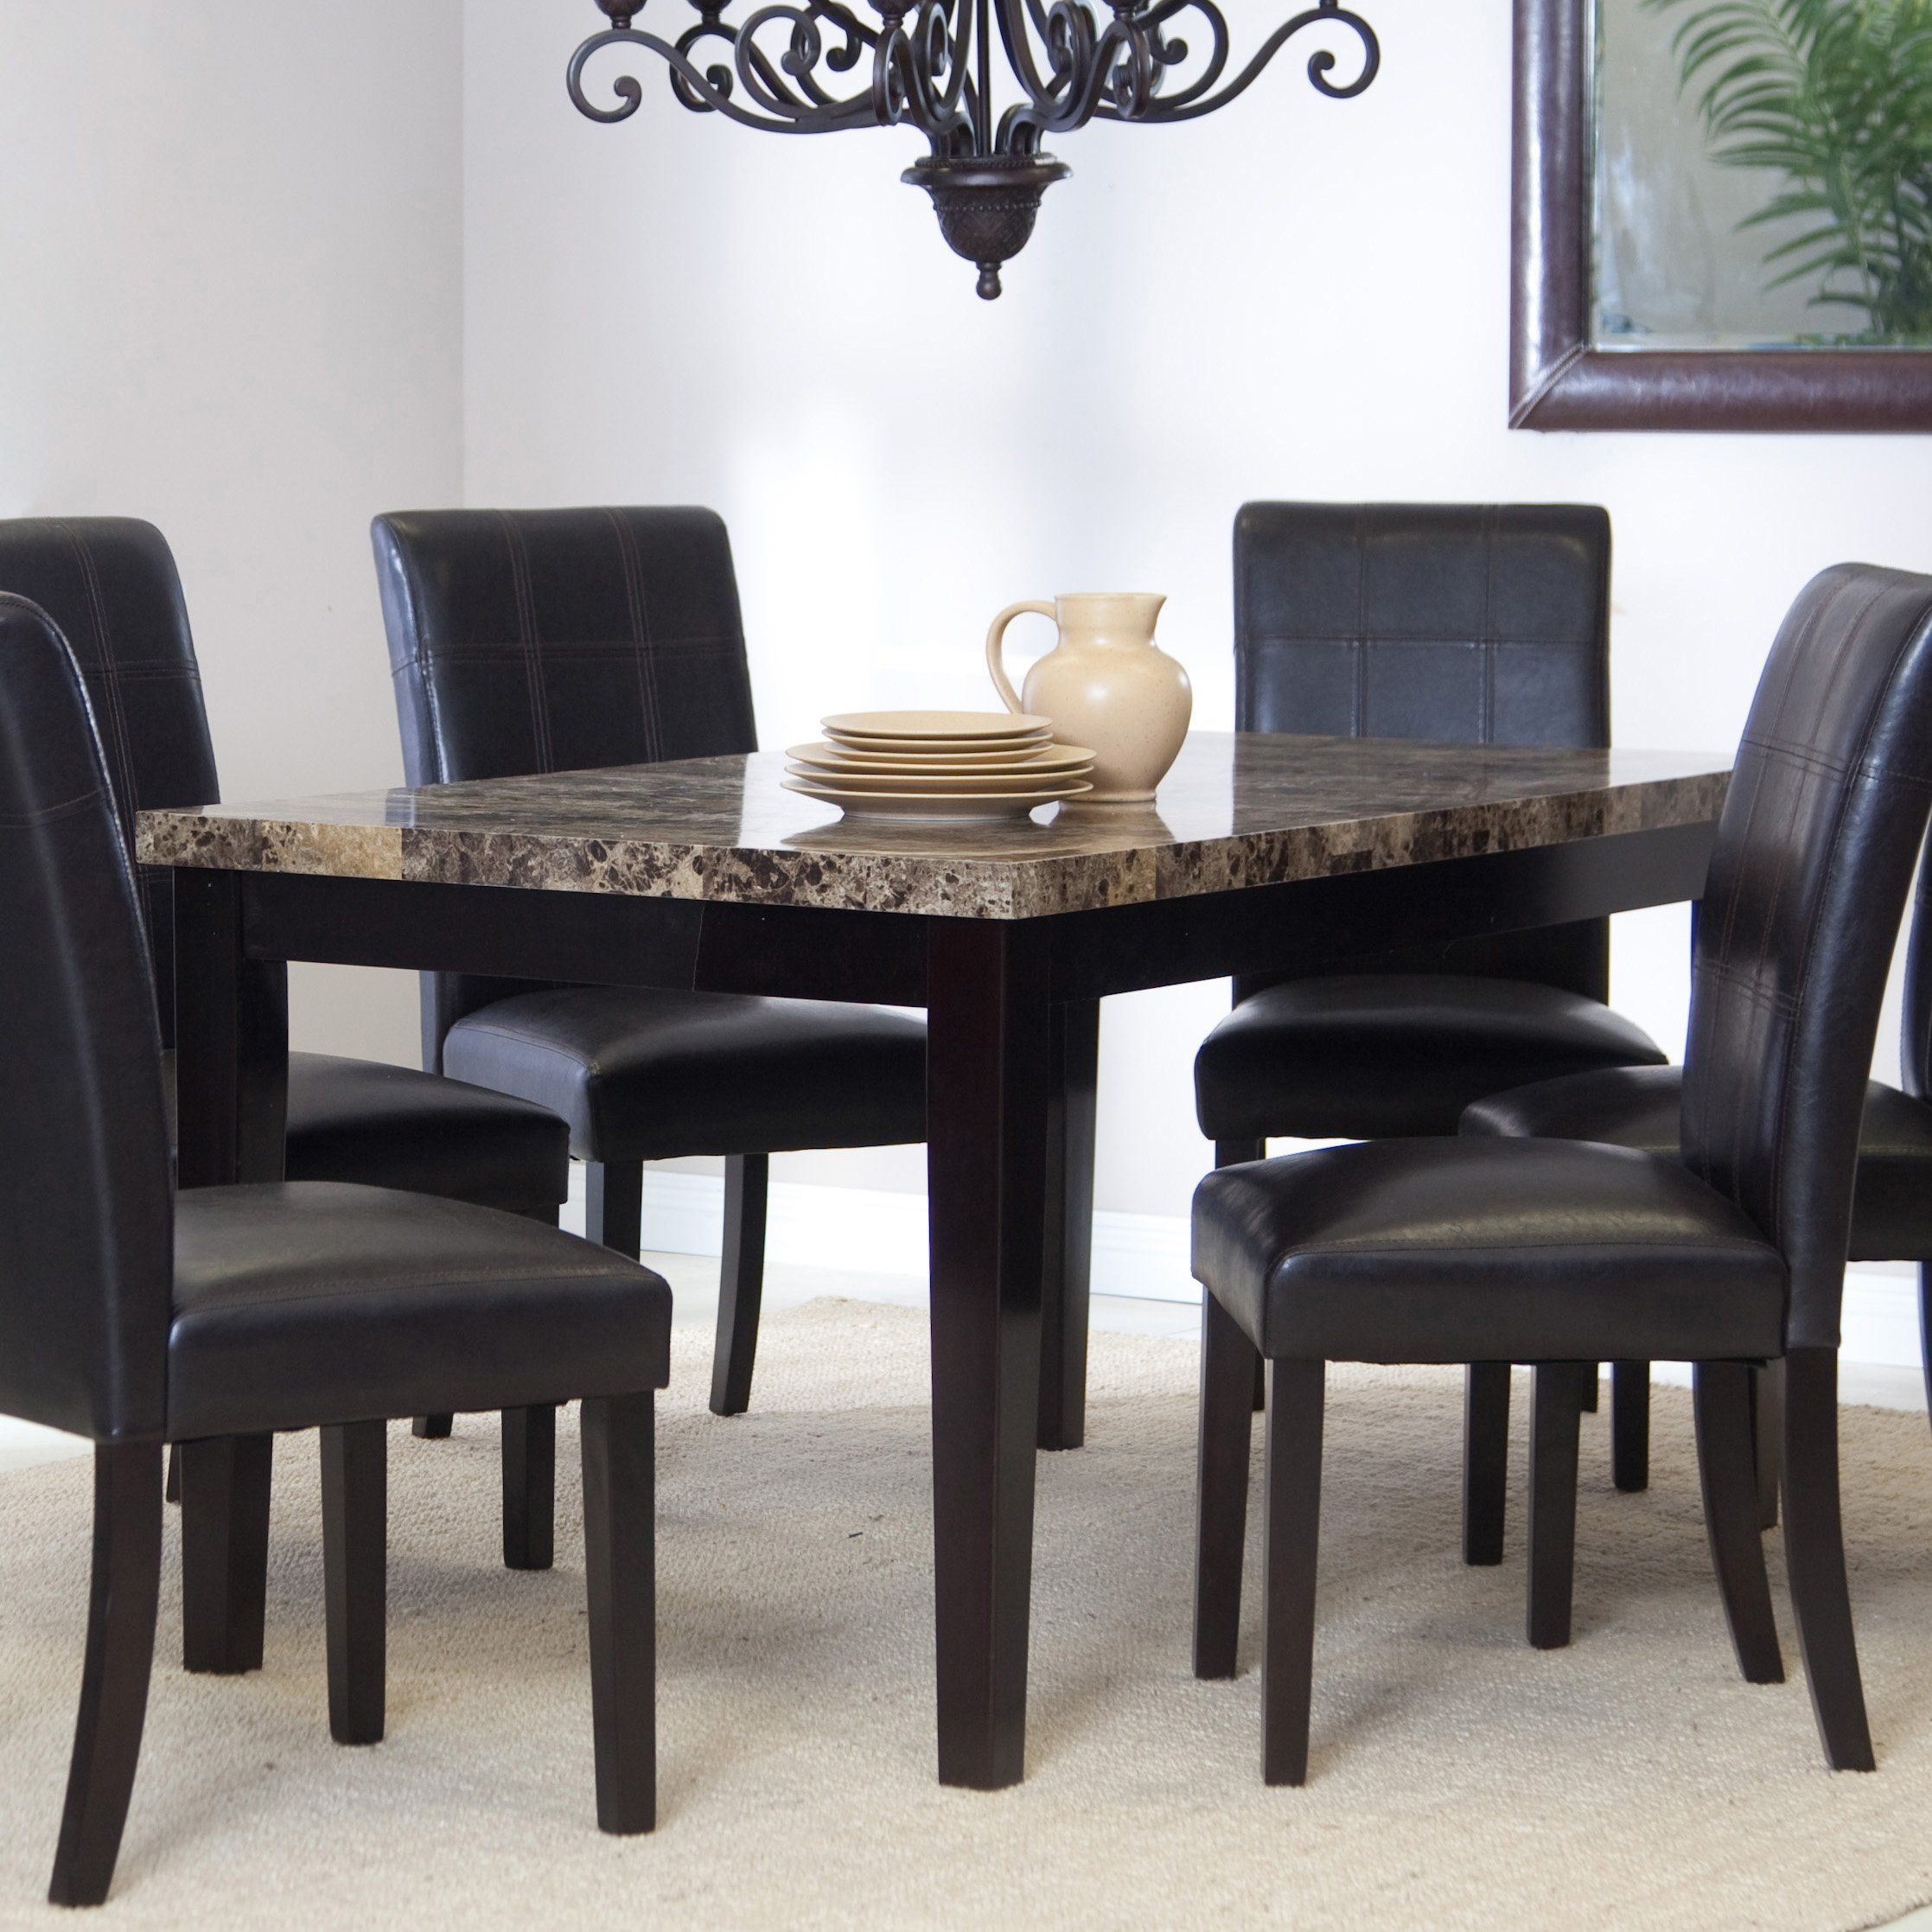 Palazzo Dining Table  Every Meal Will Be More Elegant When Eaten Inspiration Dining Room Sets For Sale Cheap Inspiration